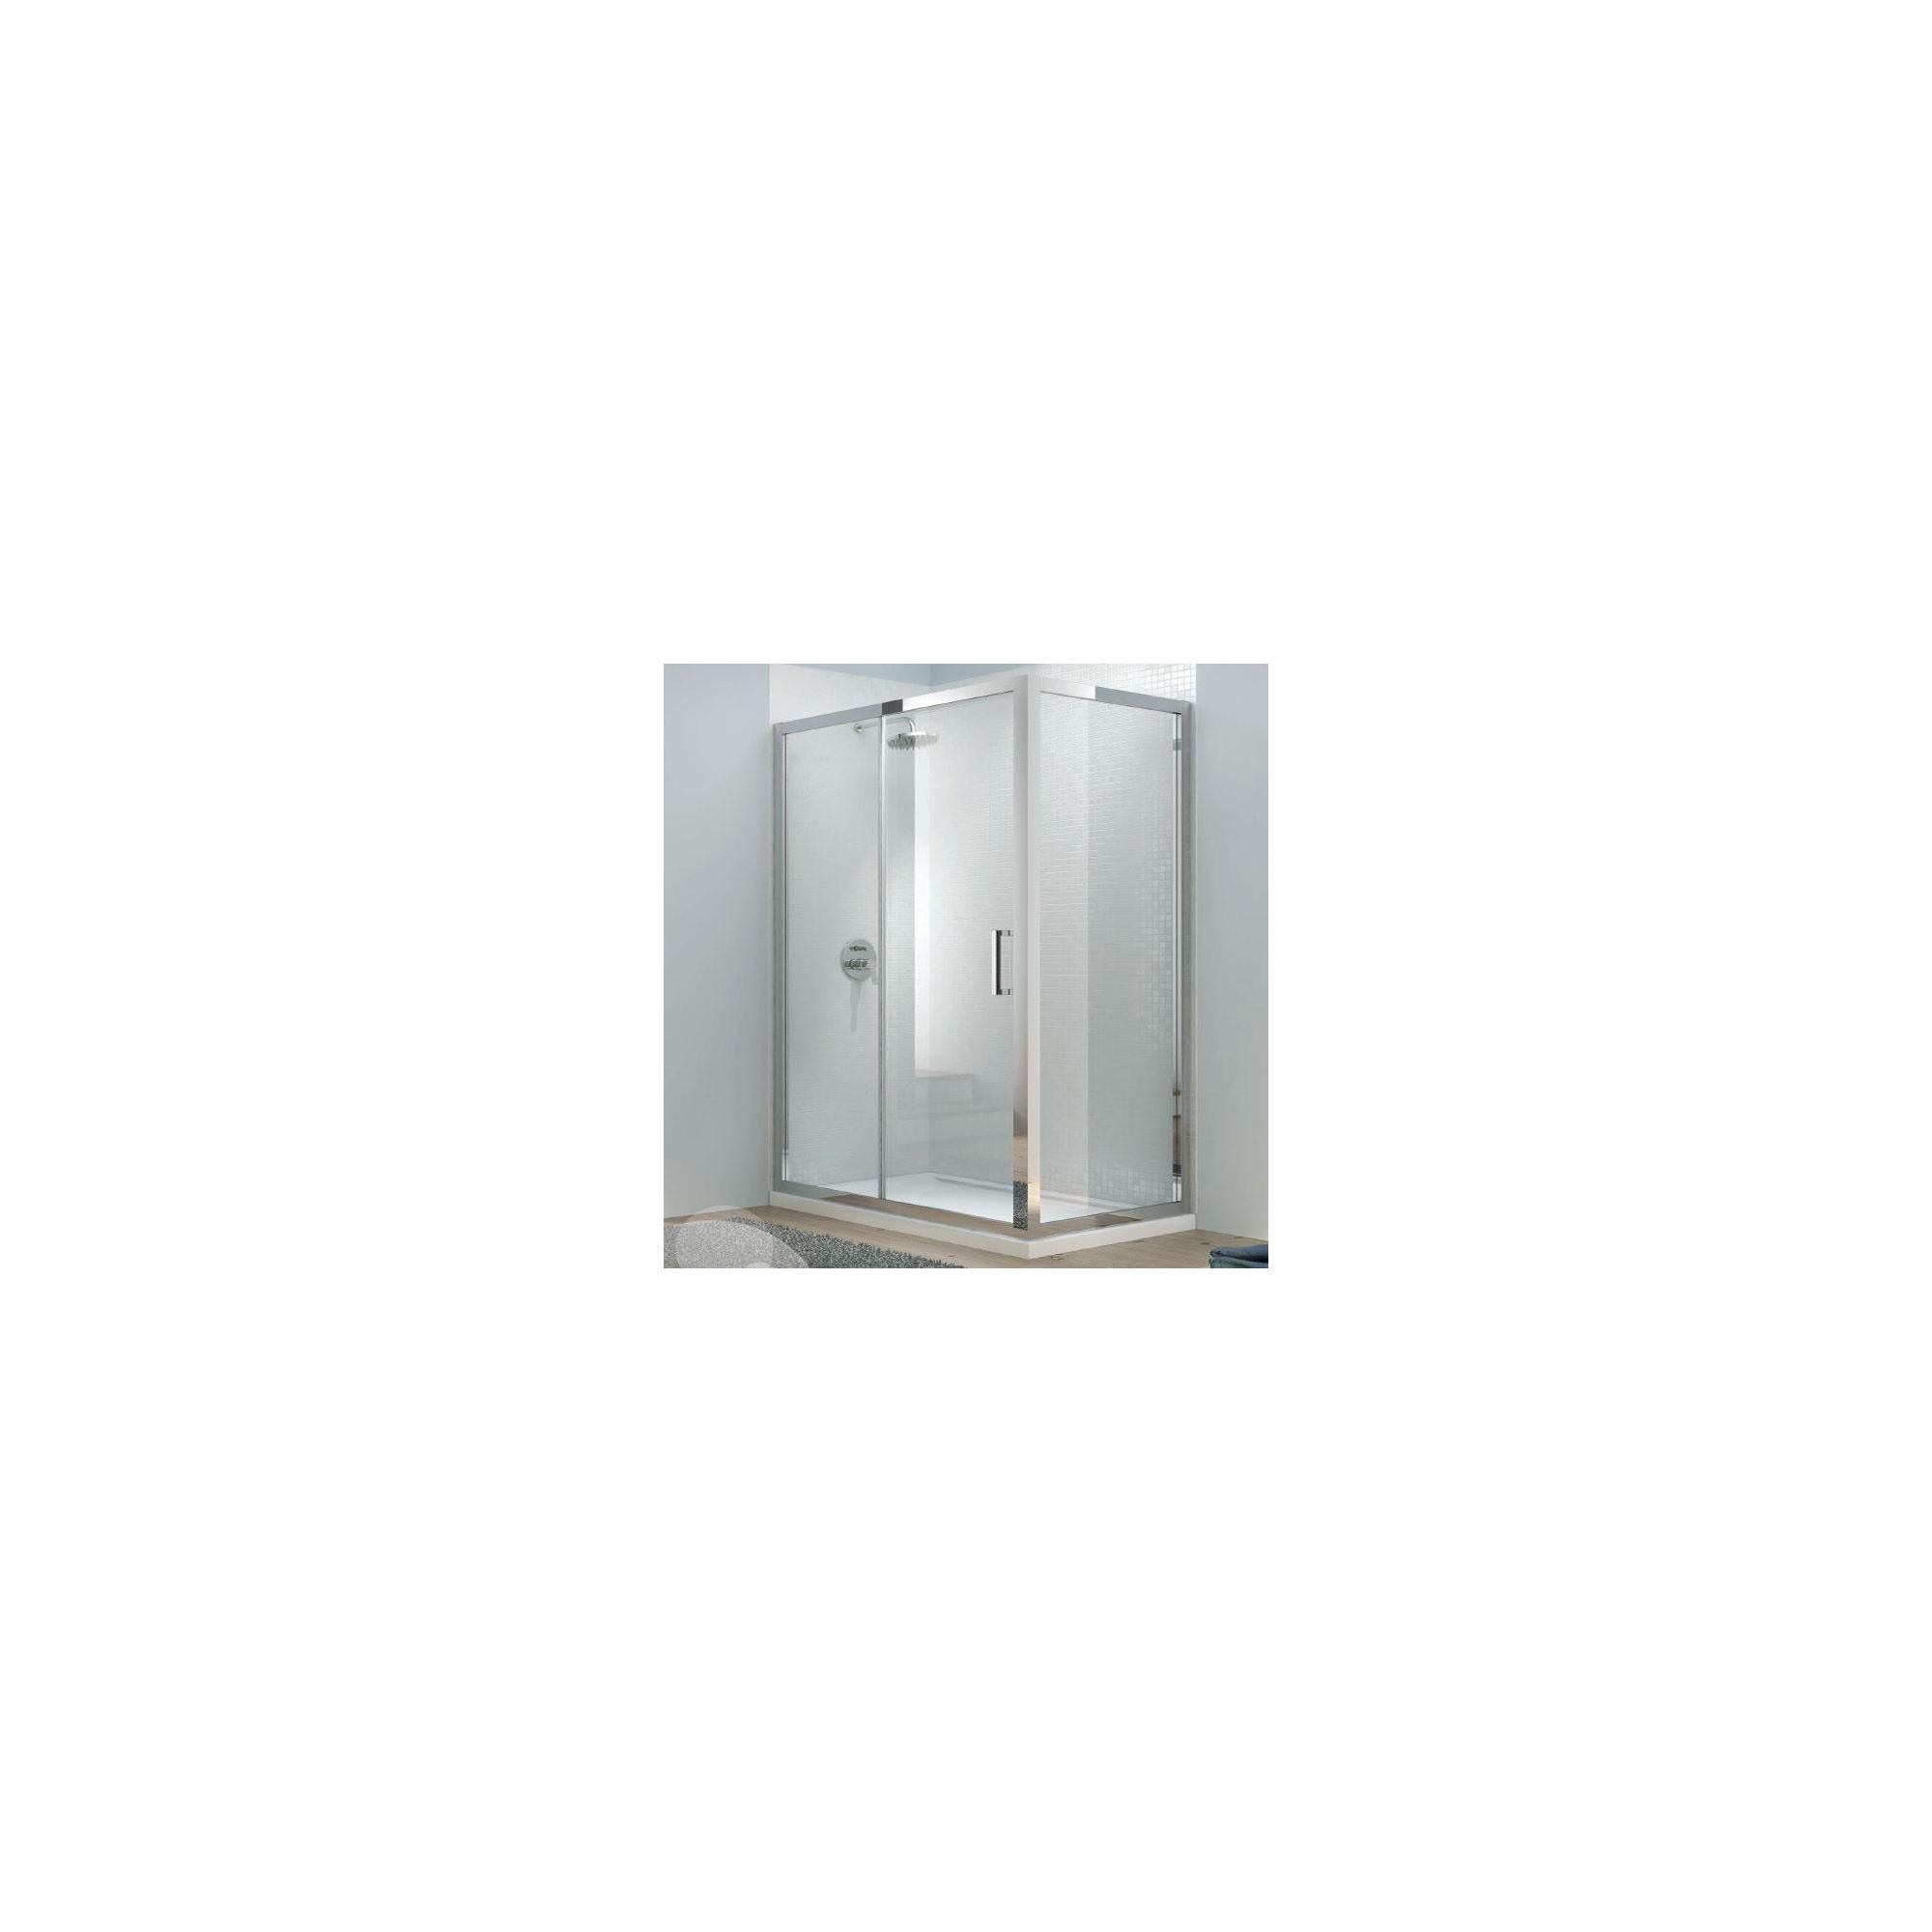 Merlyn Vivid Eight Sliding Door Shower Enclosure, 1200mm x 900mm, Low Profile Tray, 8mm Glass at Tesco Direct